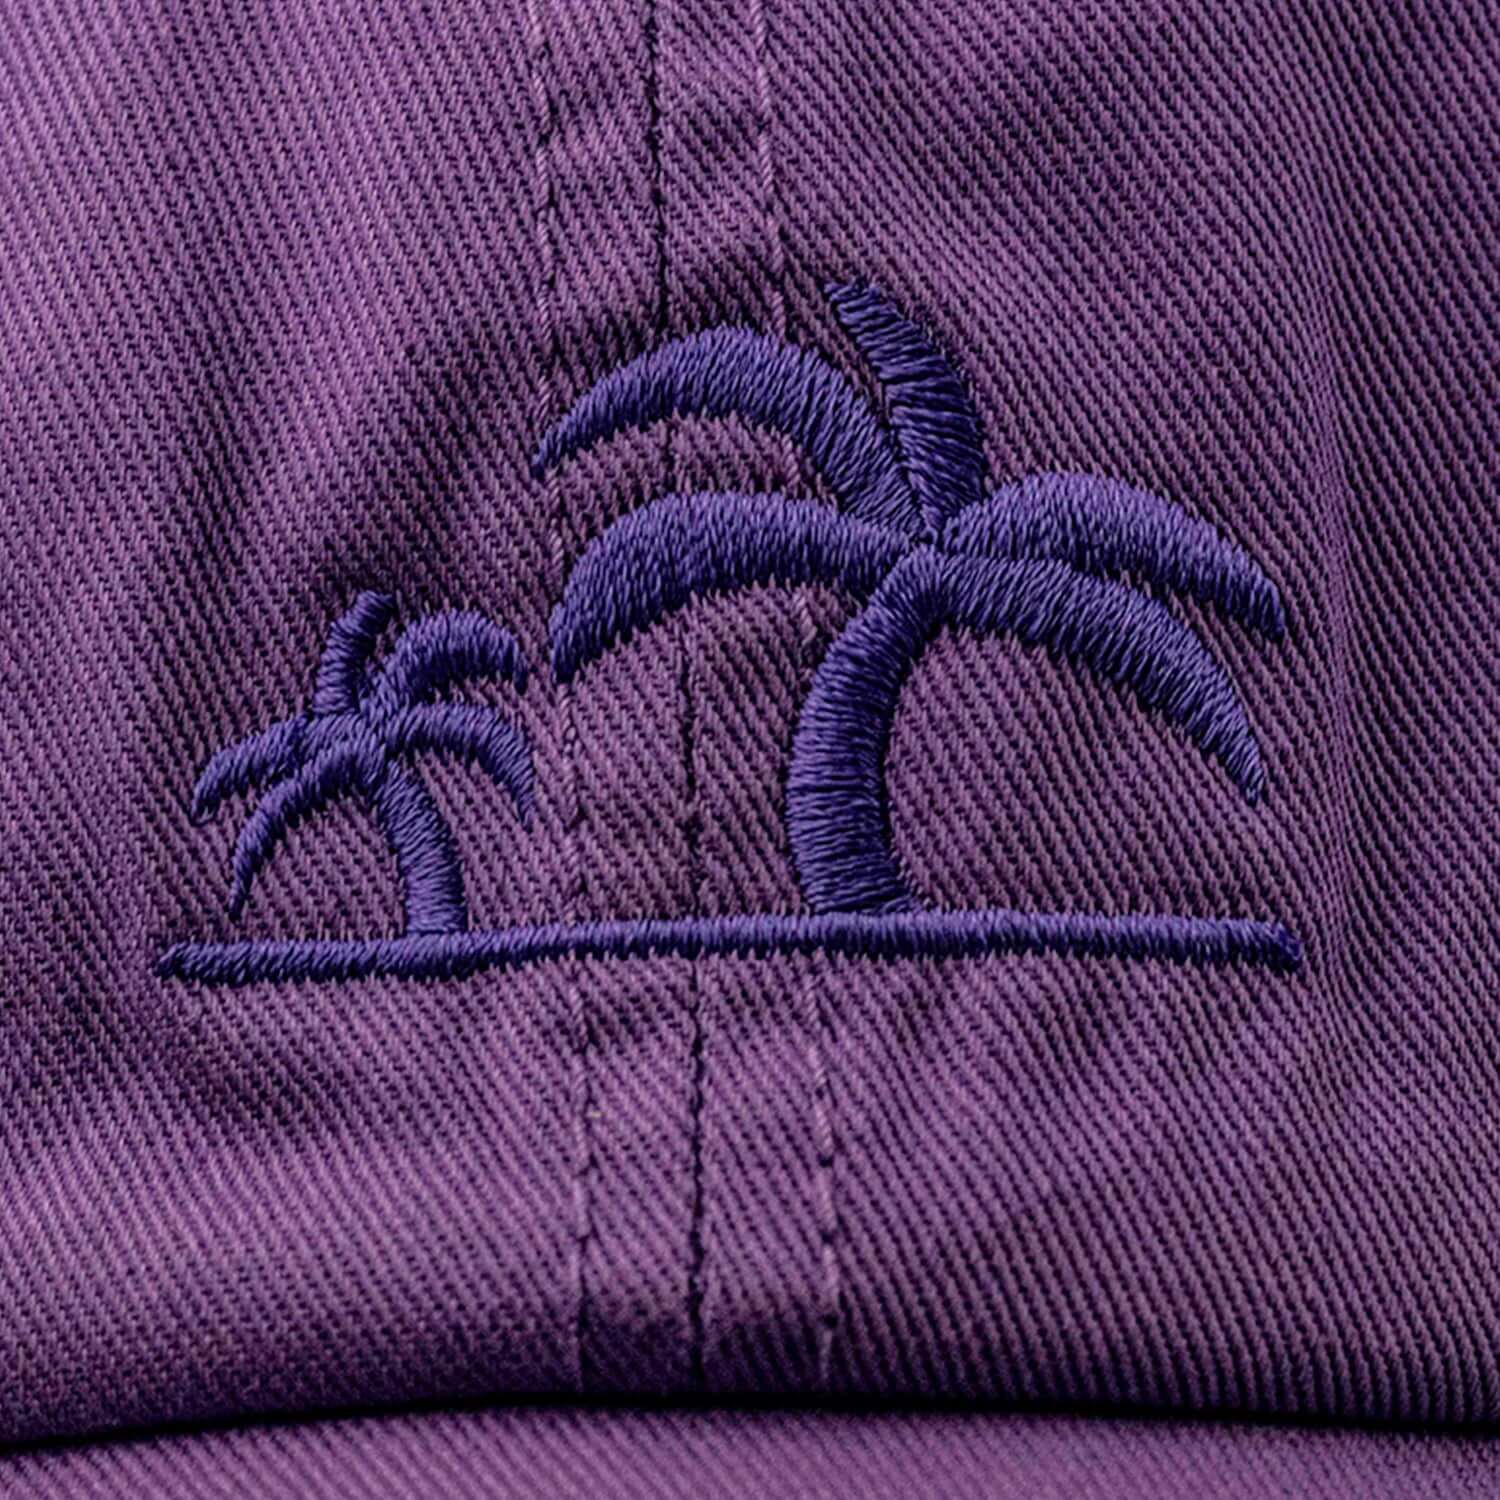 PURPLE HAT - Clorofila Sea Wear